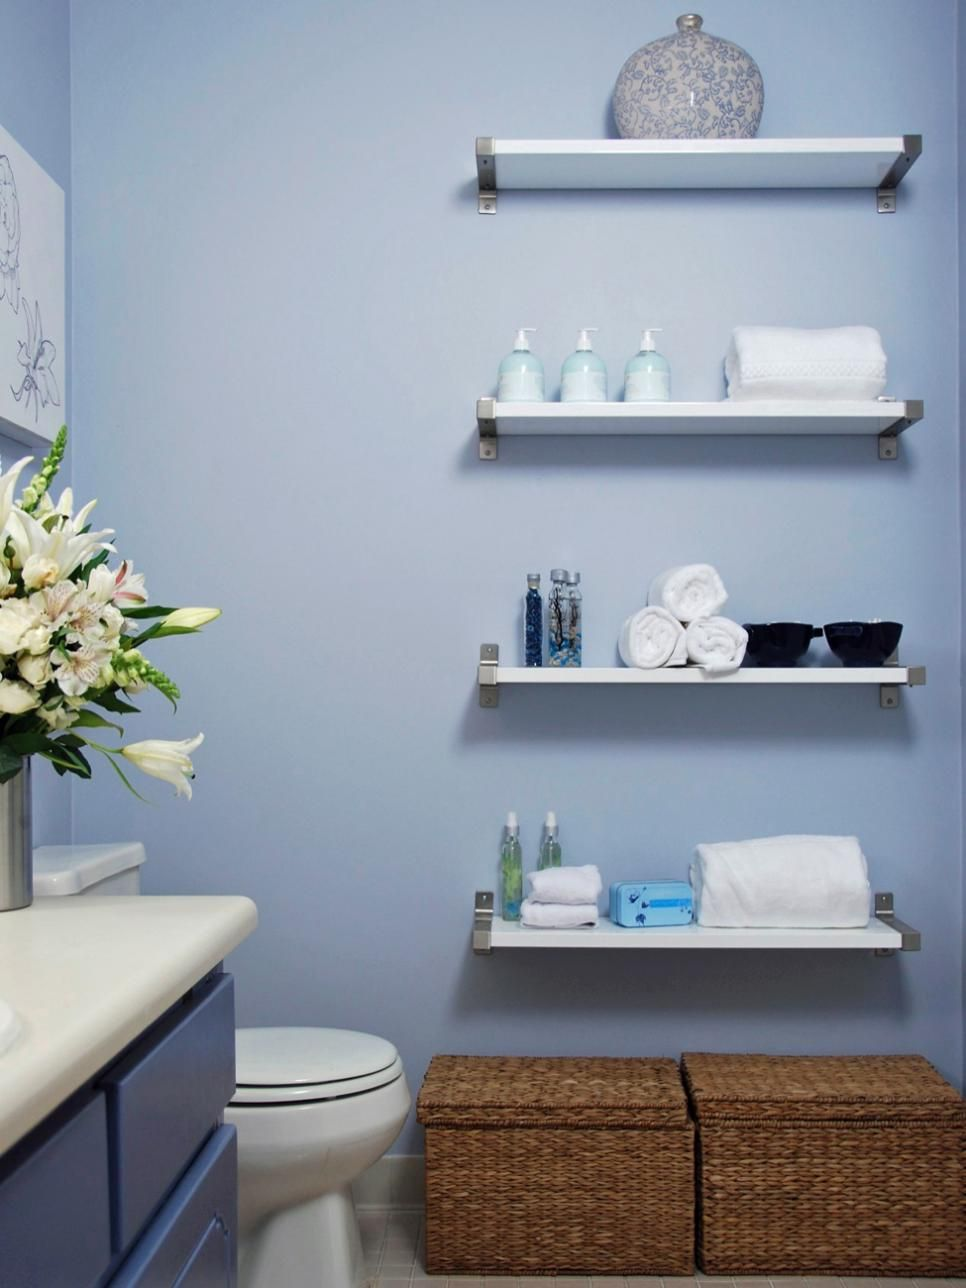 Small Bathroom Storage Solutions | Extra storage, Clever and Storage ...